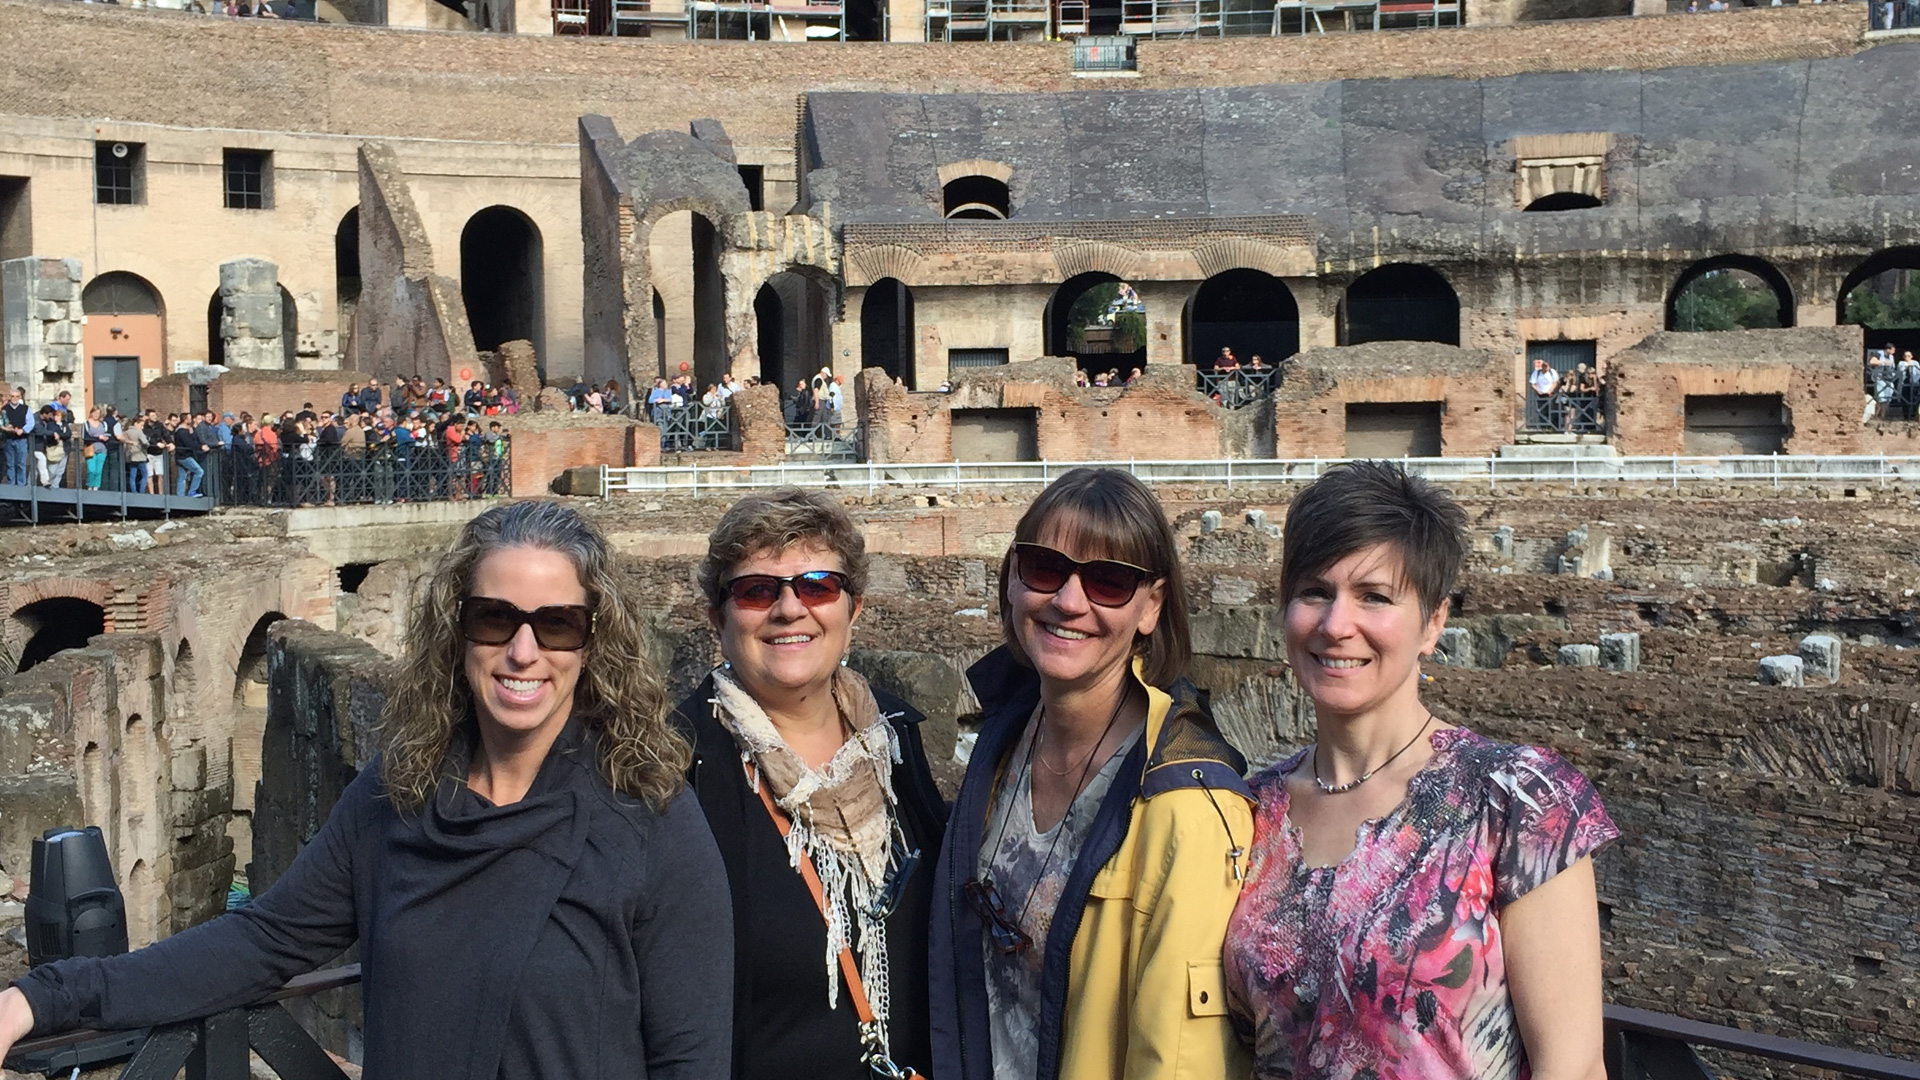 Women's Only Colisseum